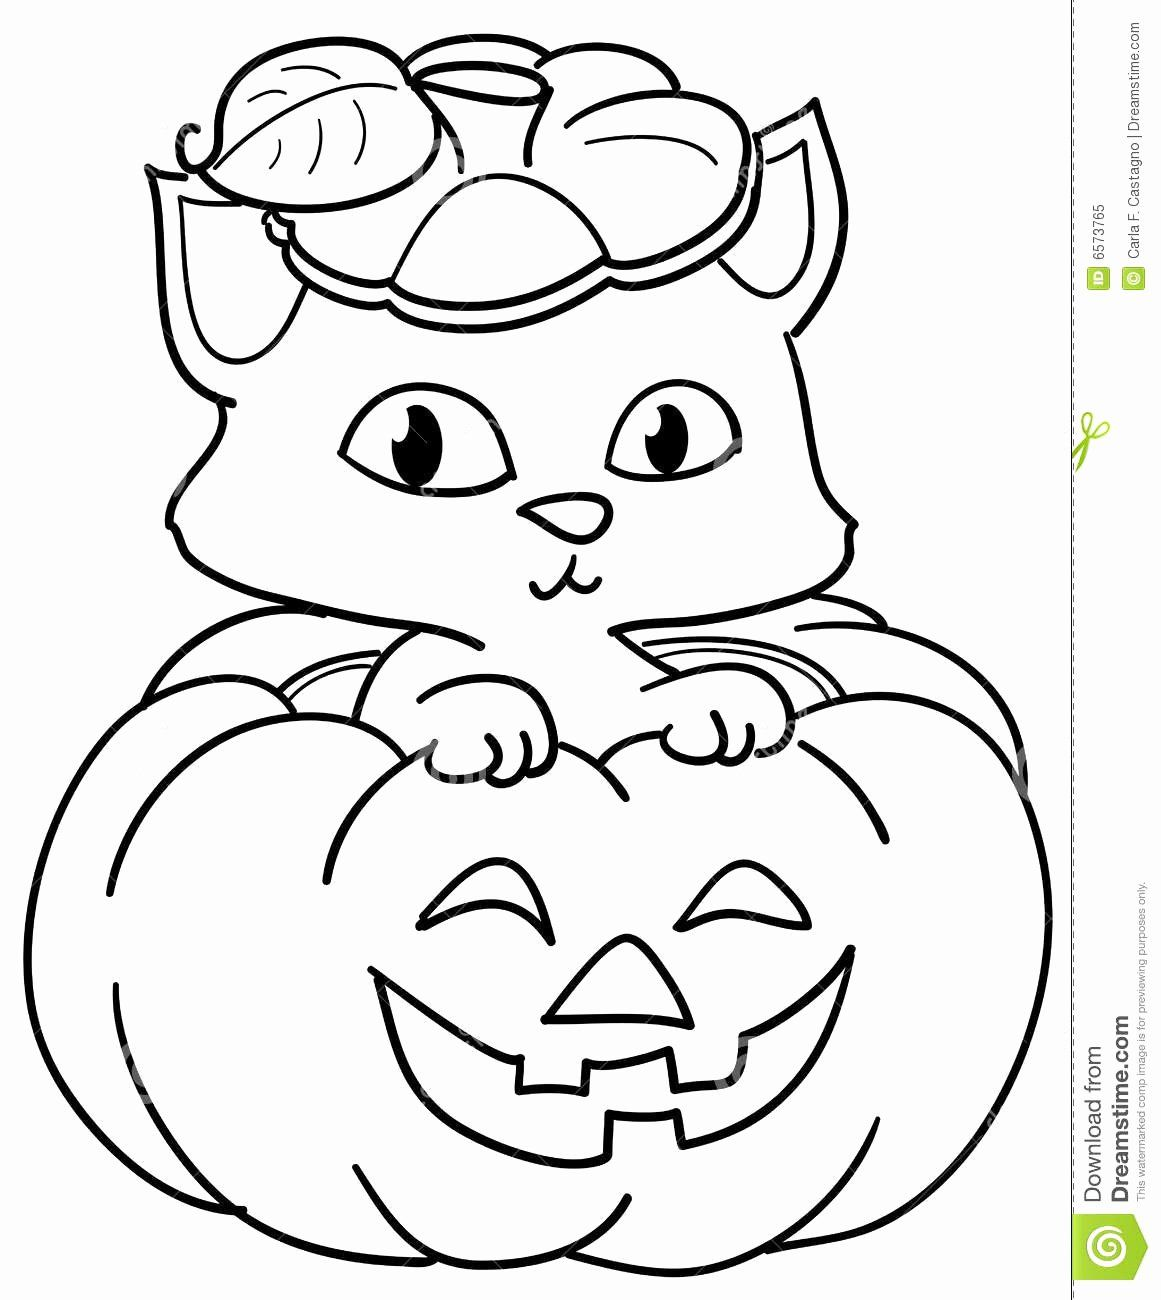 Bat Halloween Coloring Pages Elegant 61 Most Awesome Halloween Cat Coloring Page 7 4171 Cute